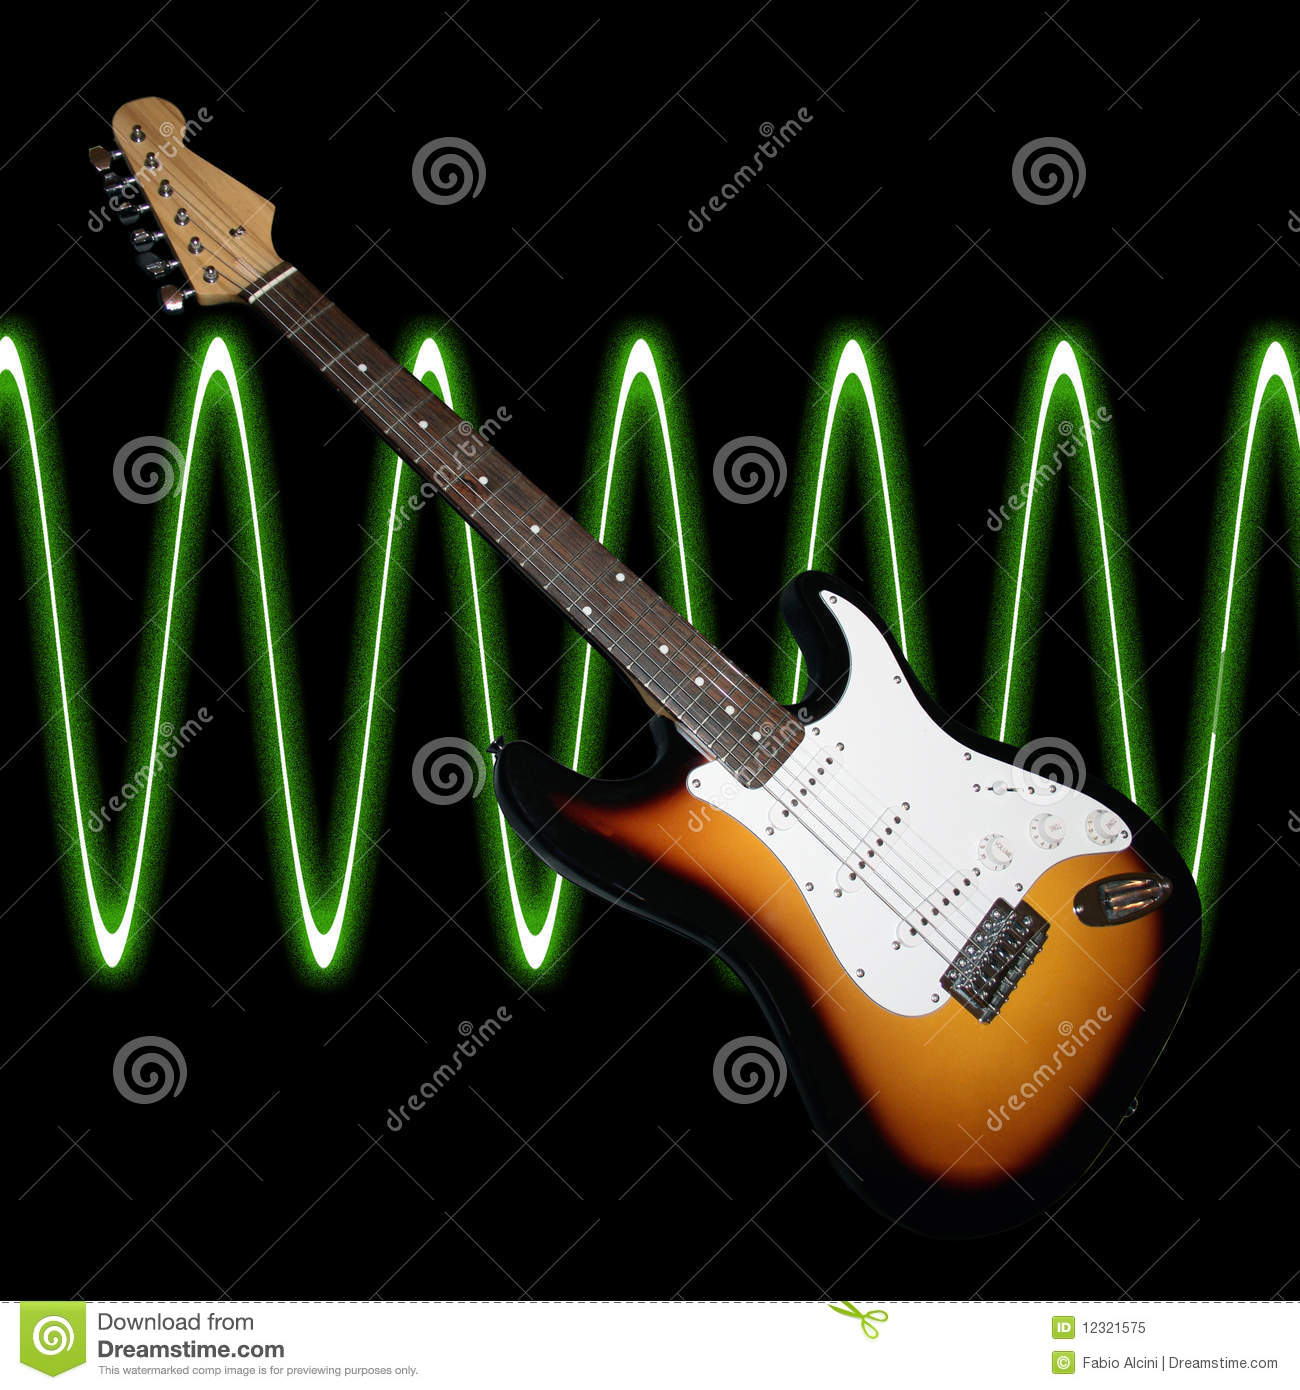 guitar with sound waves stock image image of loud electric 12321575. Black Bedroom Furniture Sets. Home Design Ideas